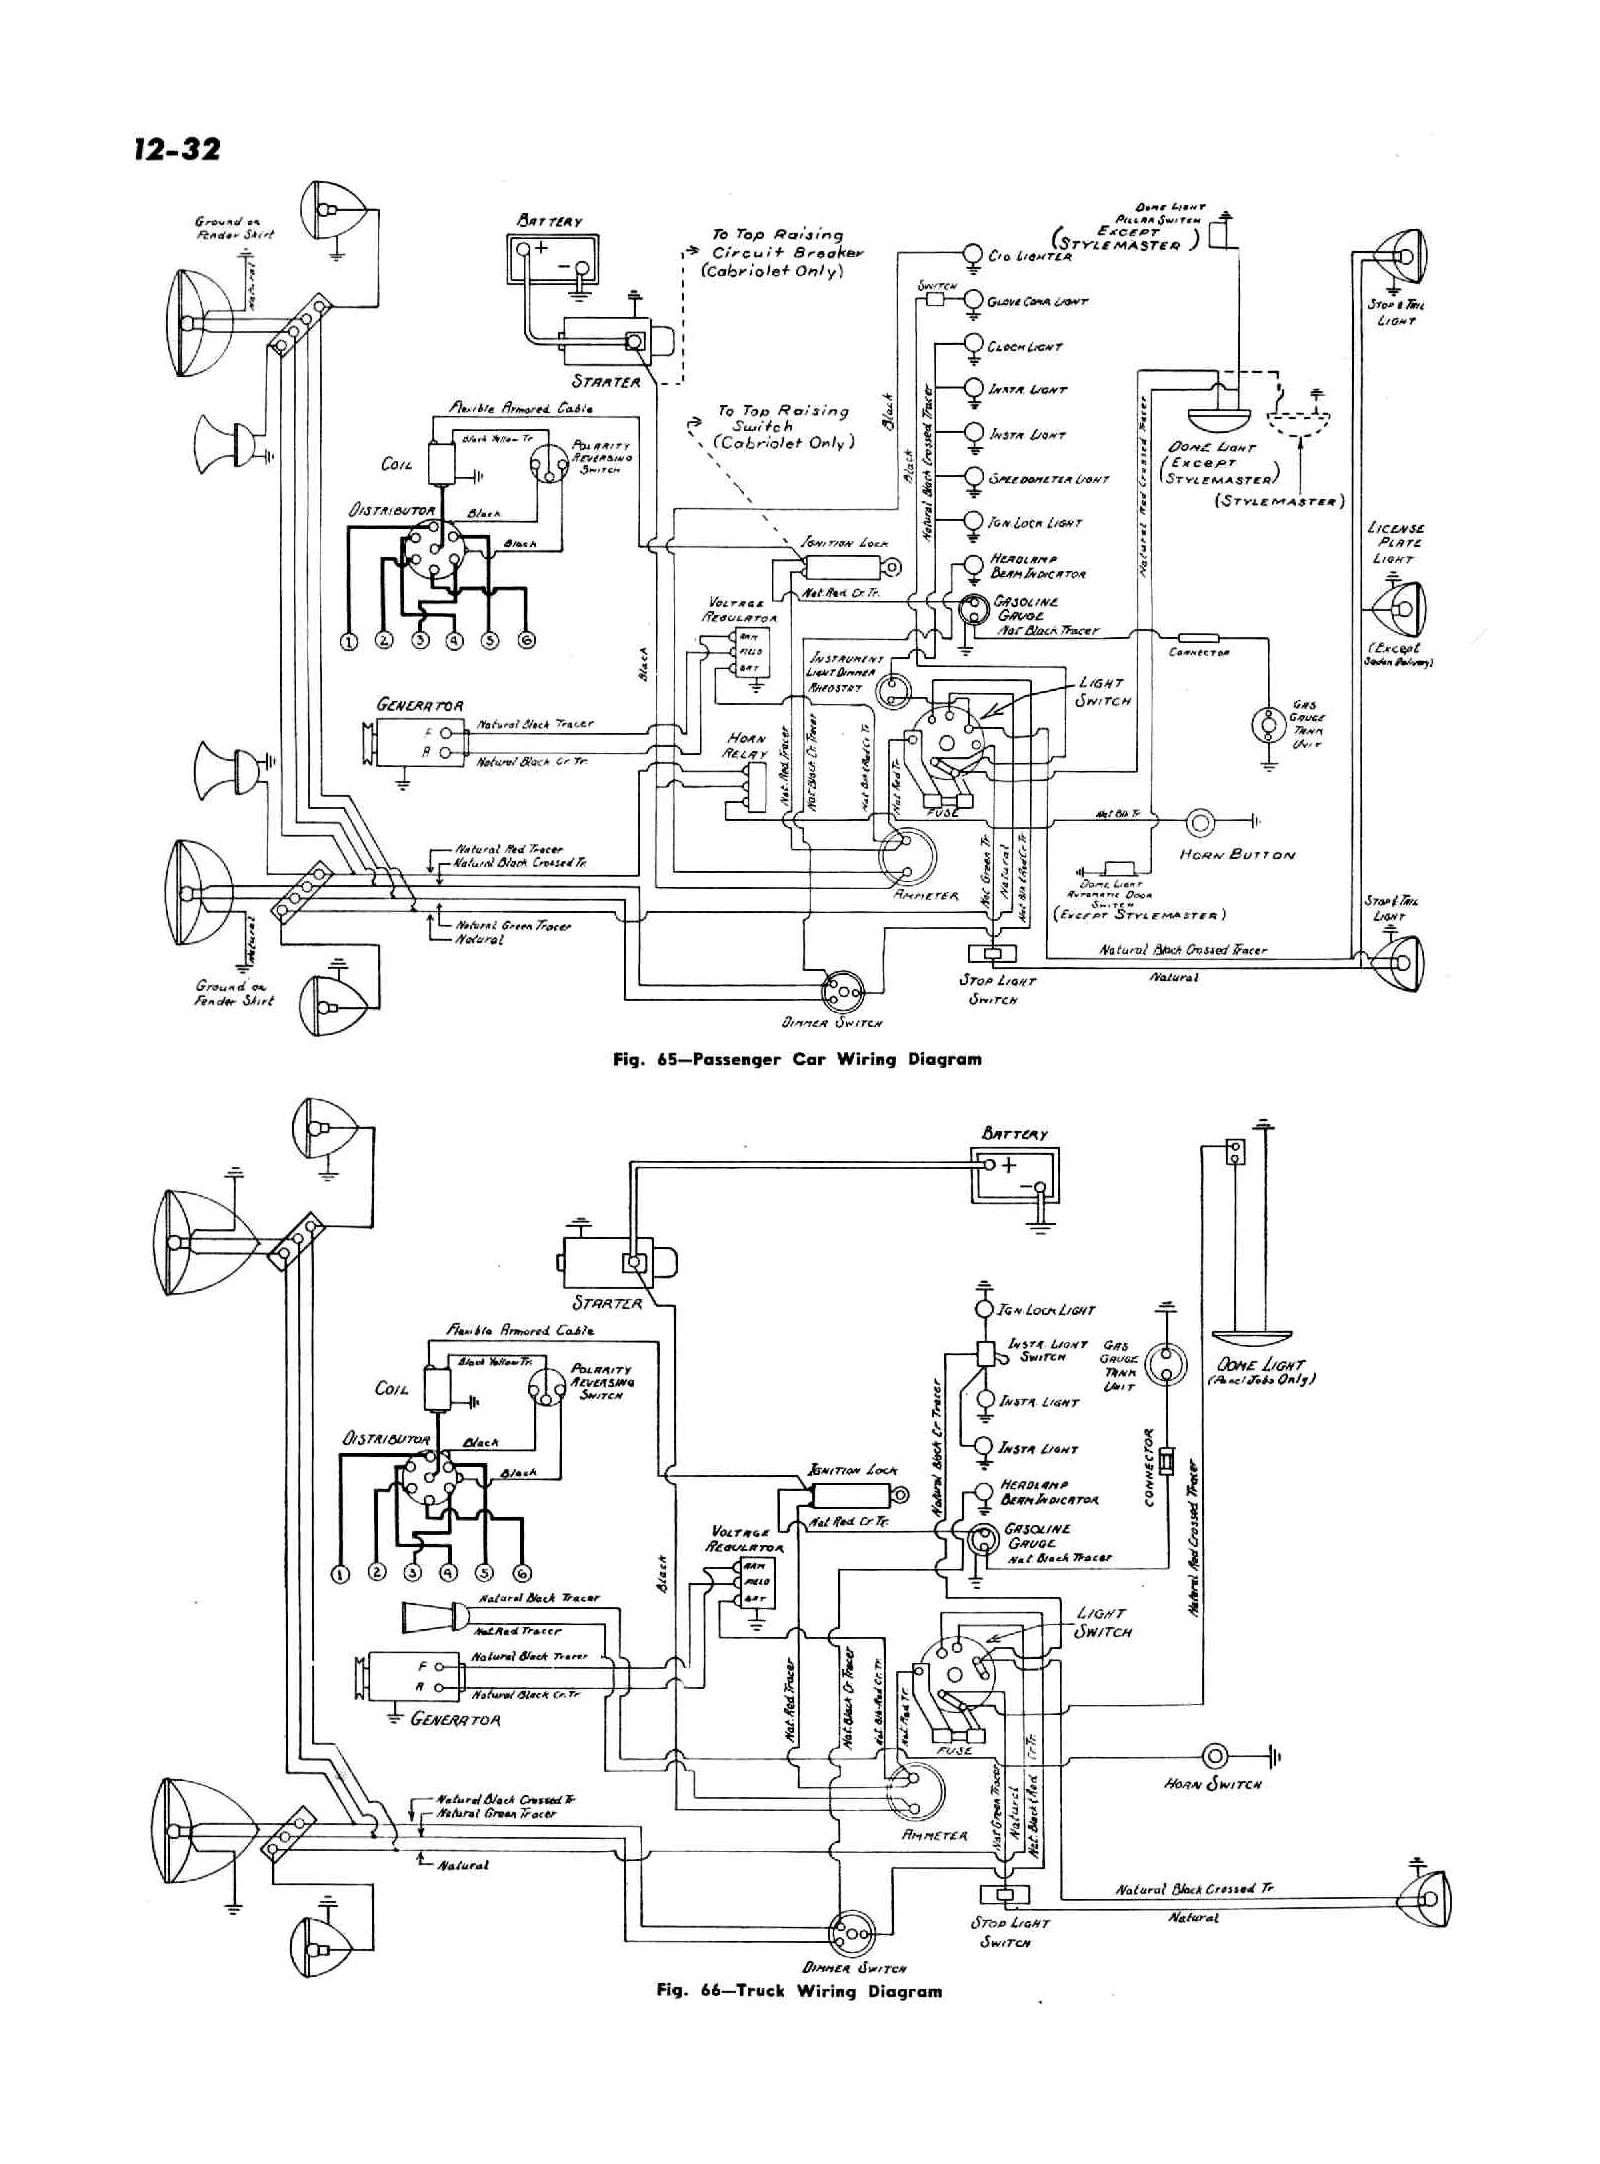 Wiring Diagram Cars Trucks. Wiring Diagram Cars Trucks